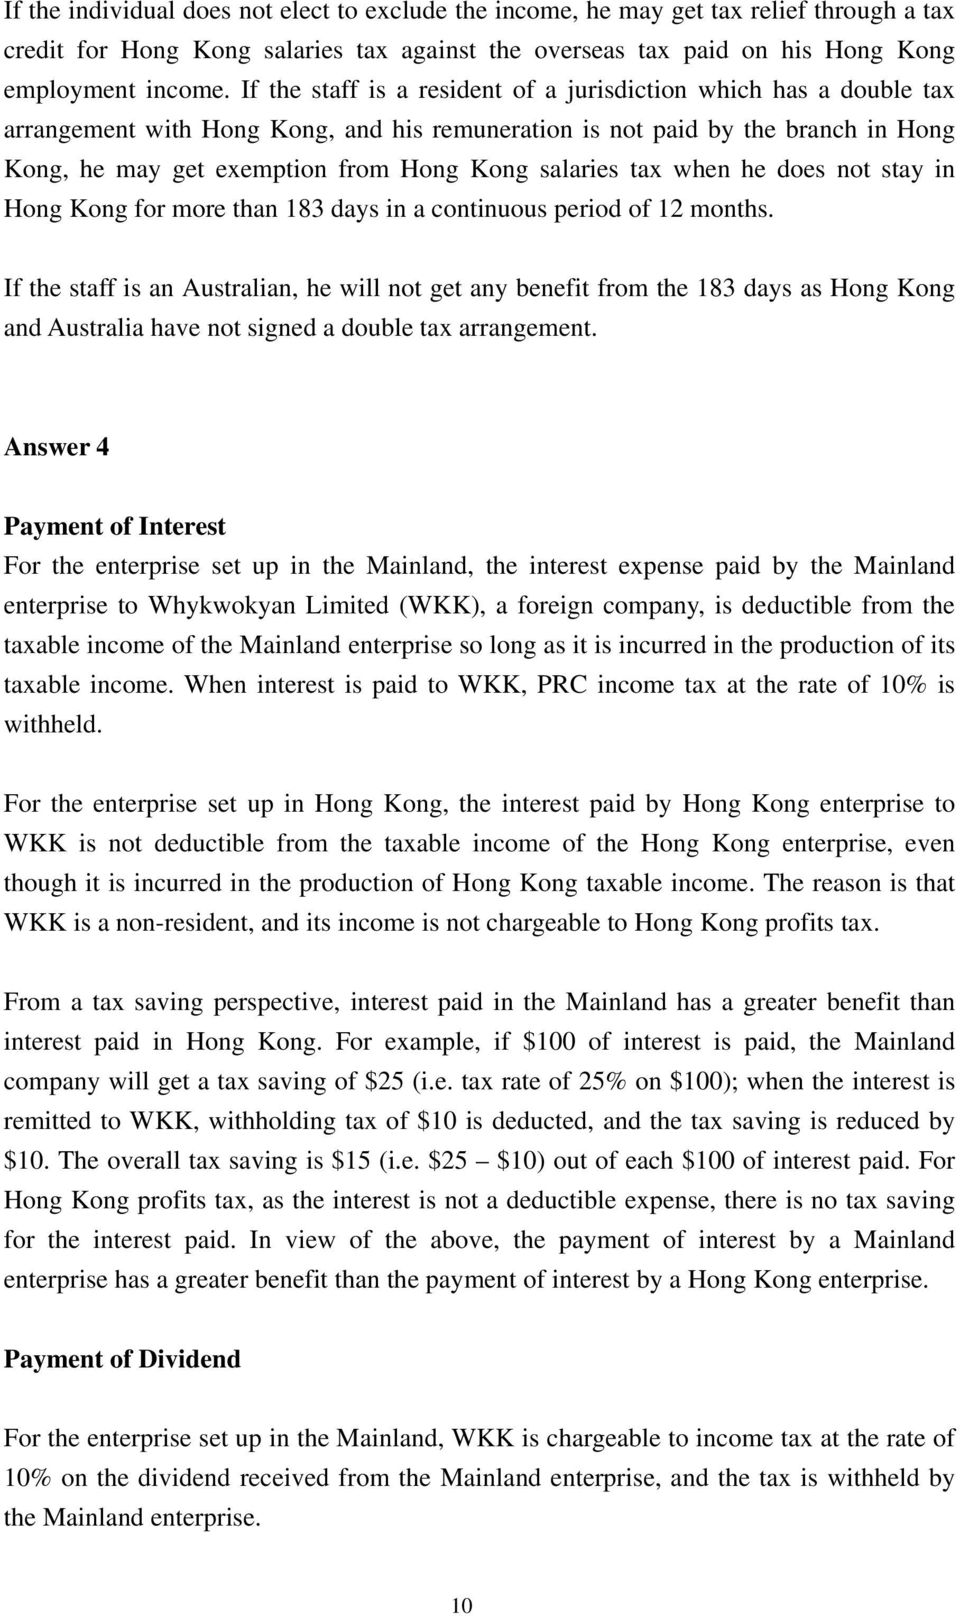 salaries tax when he does not stay in Hong Kong for more than 183 days in a continuous period of 12 months.